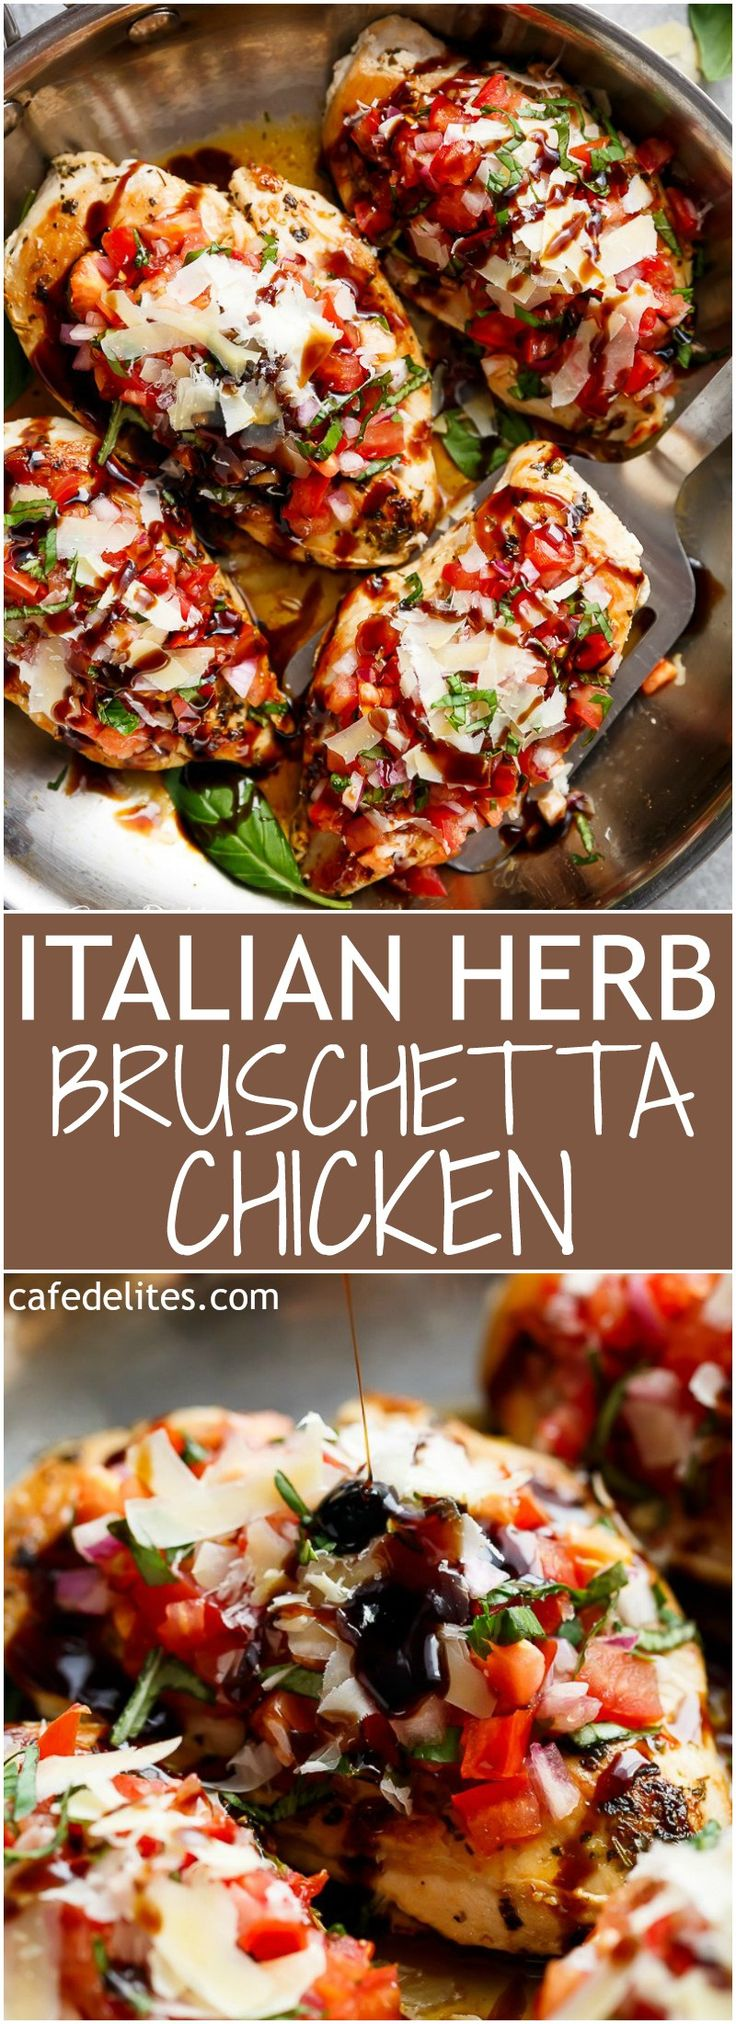 Italian Herb Bruschetta Chicken is a low carb alternative to a traditional Bruschetta! Transform ordinary chicken into a